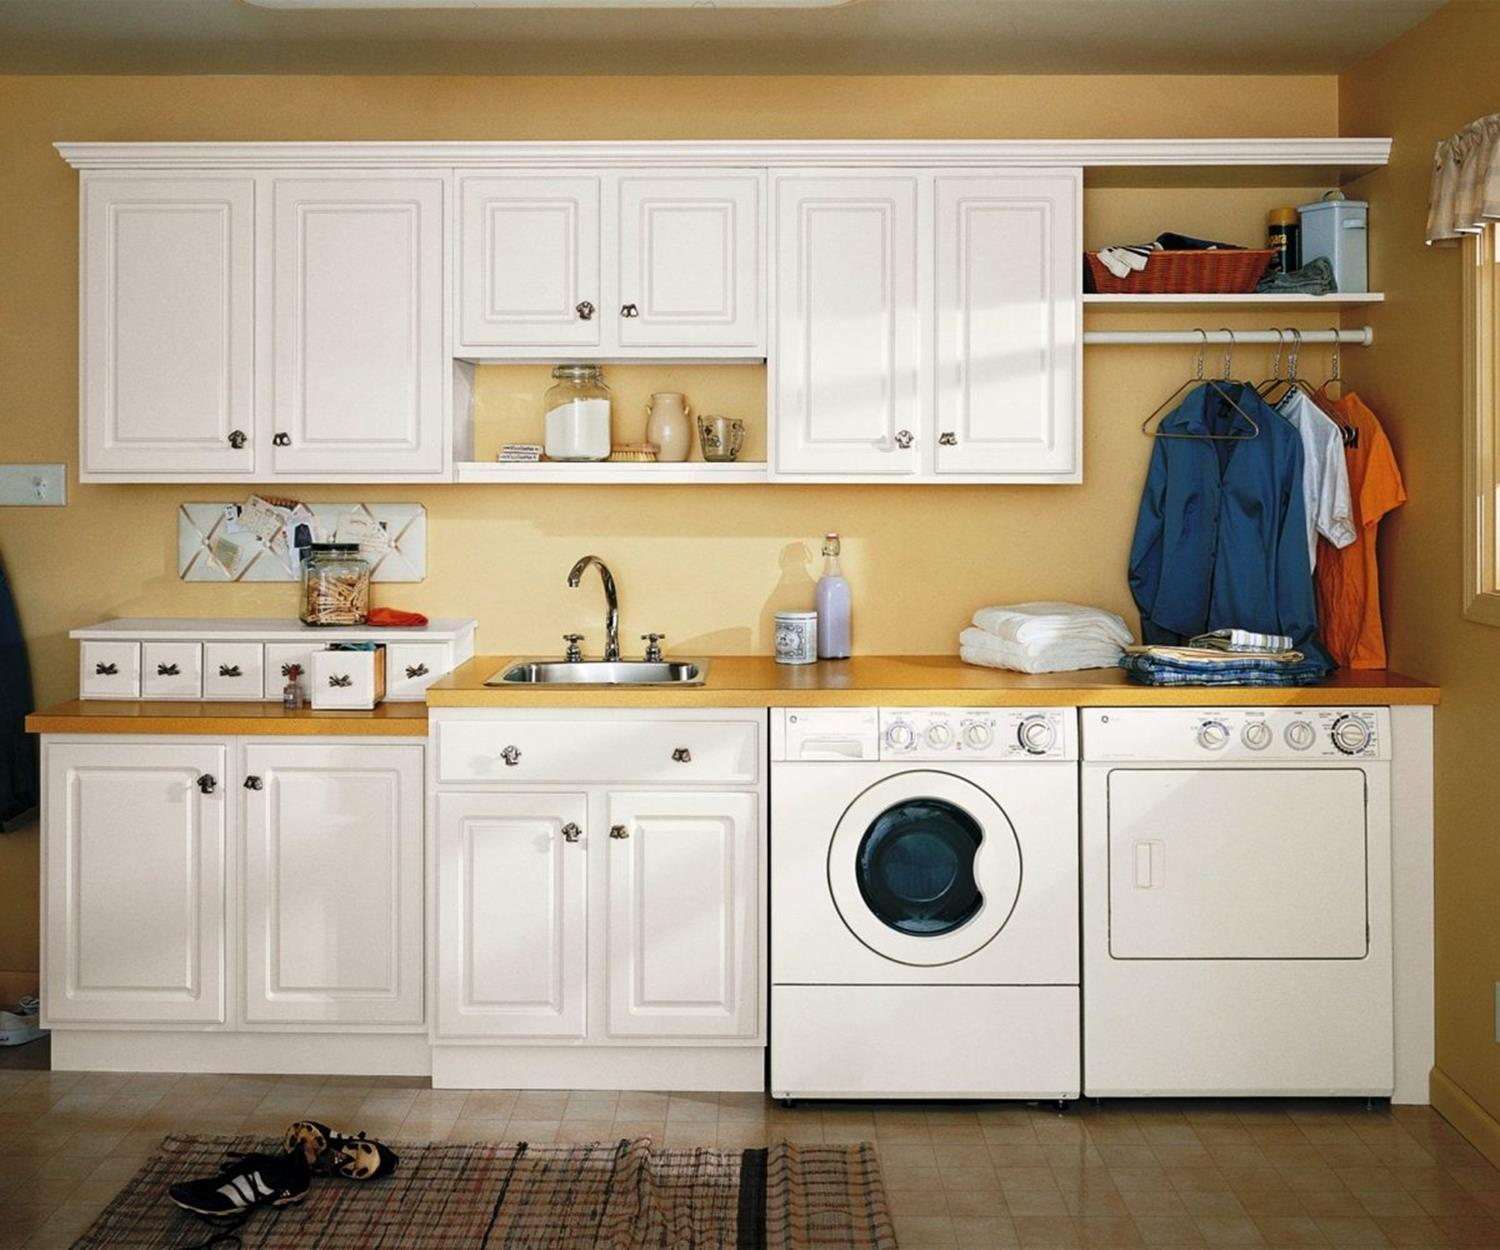 37 Best Cheap IKEA Cabinets Laundry Room Storage Ideas ... on Laundry Room Cabinets Ideas  id=45274